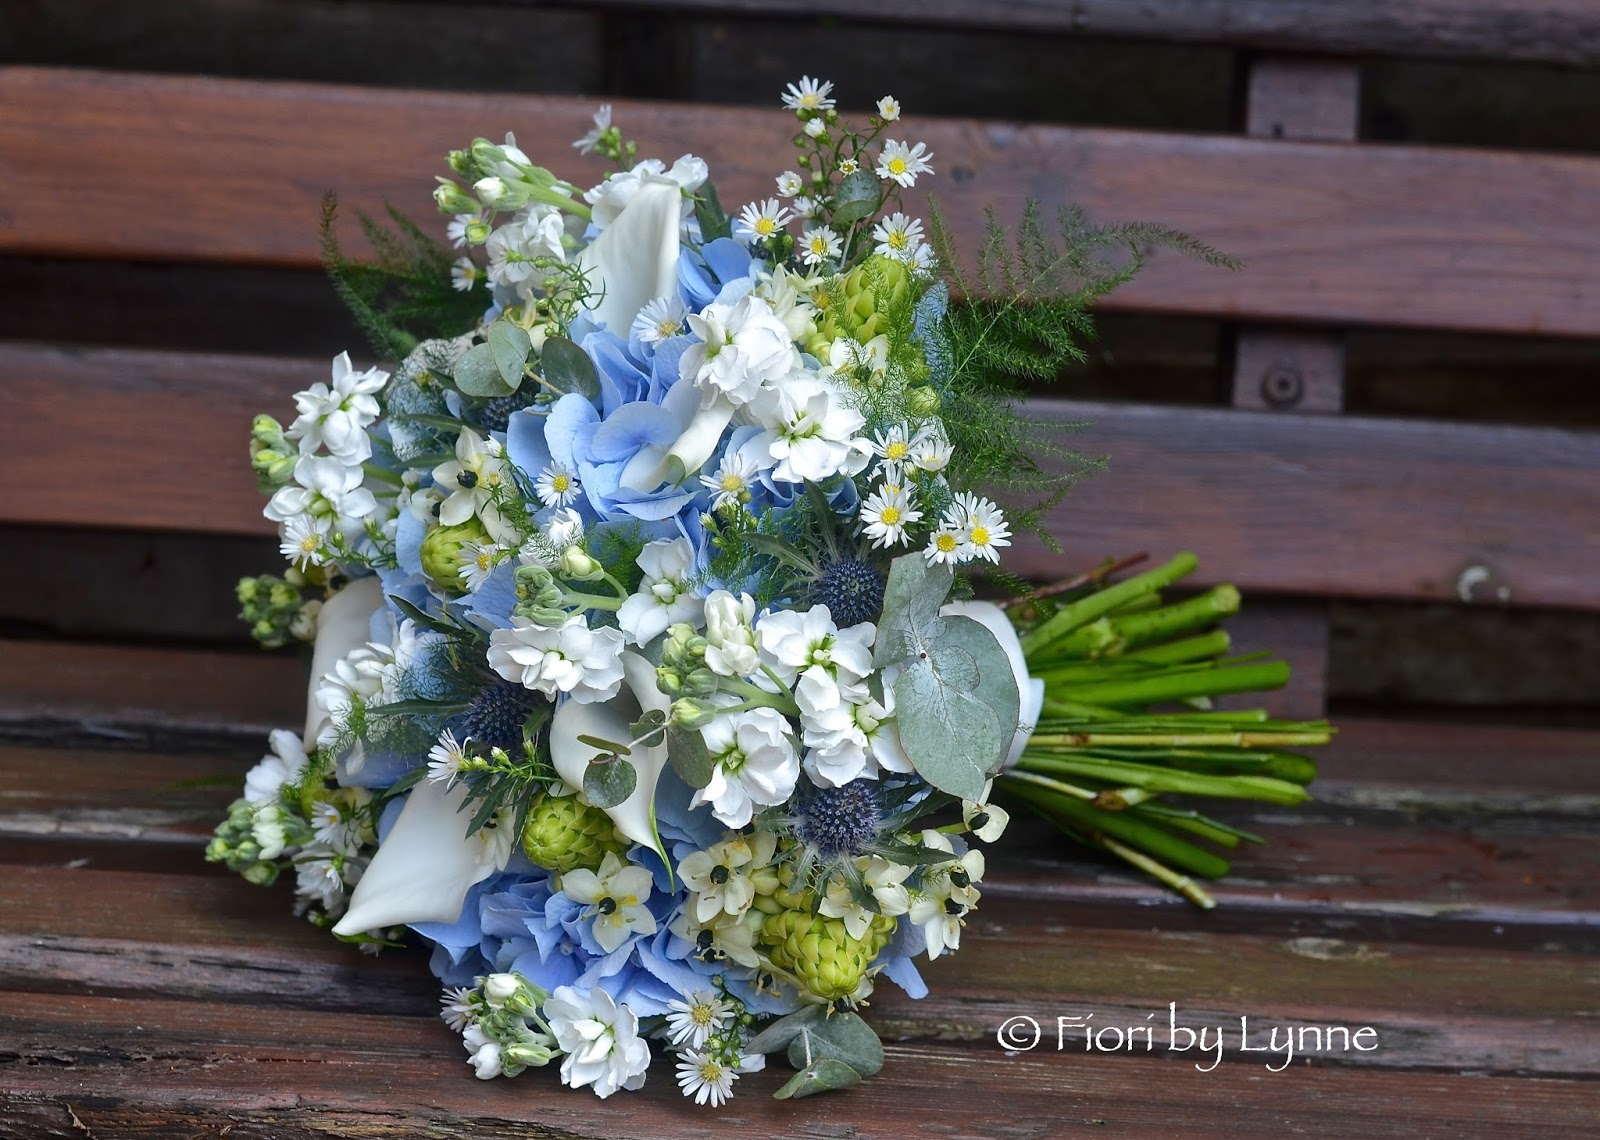 Wedding Flowers Blog: Jennie's Rustic Blue, Silver And